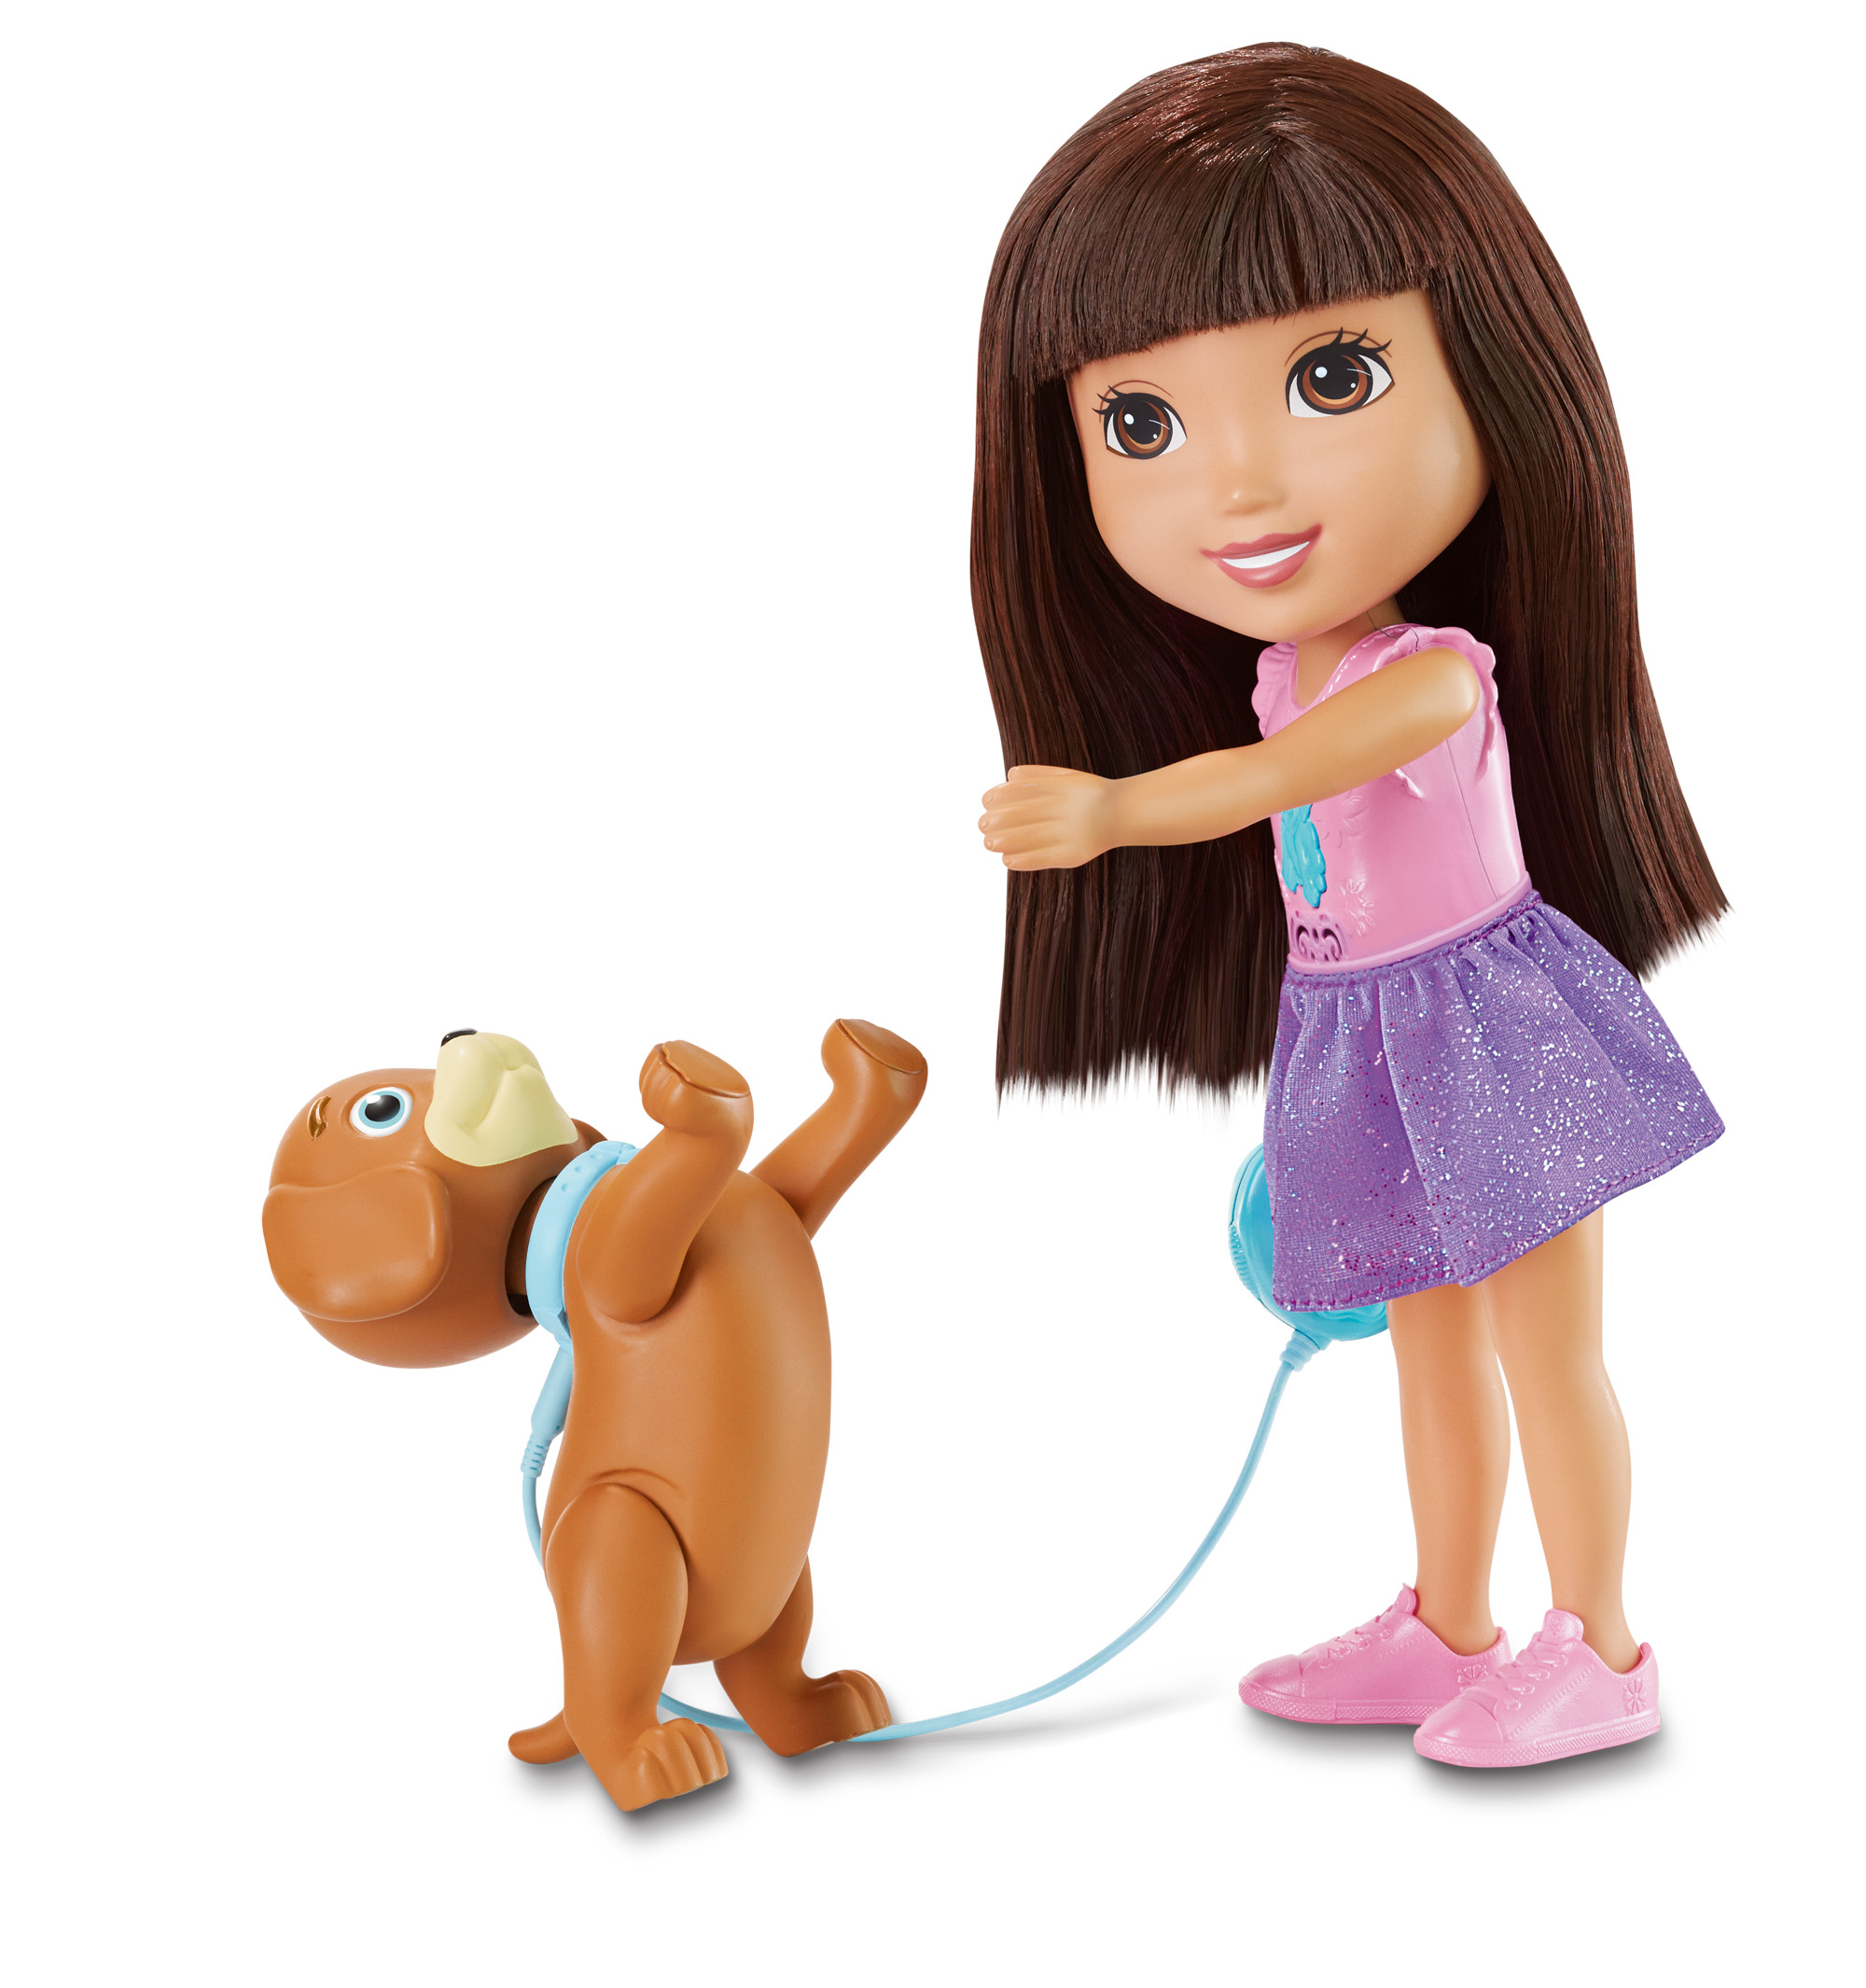 Fisher Price Nickelodeon Dora and Friends Train and Play Dora and Perrito by FISHER PRICE